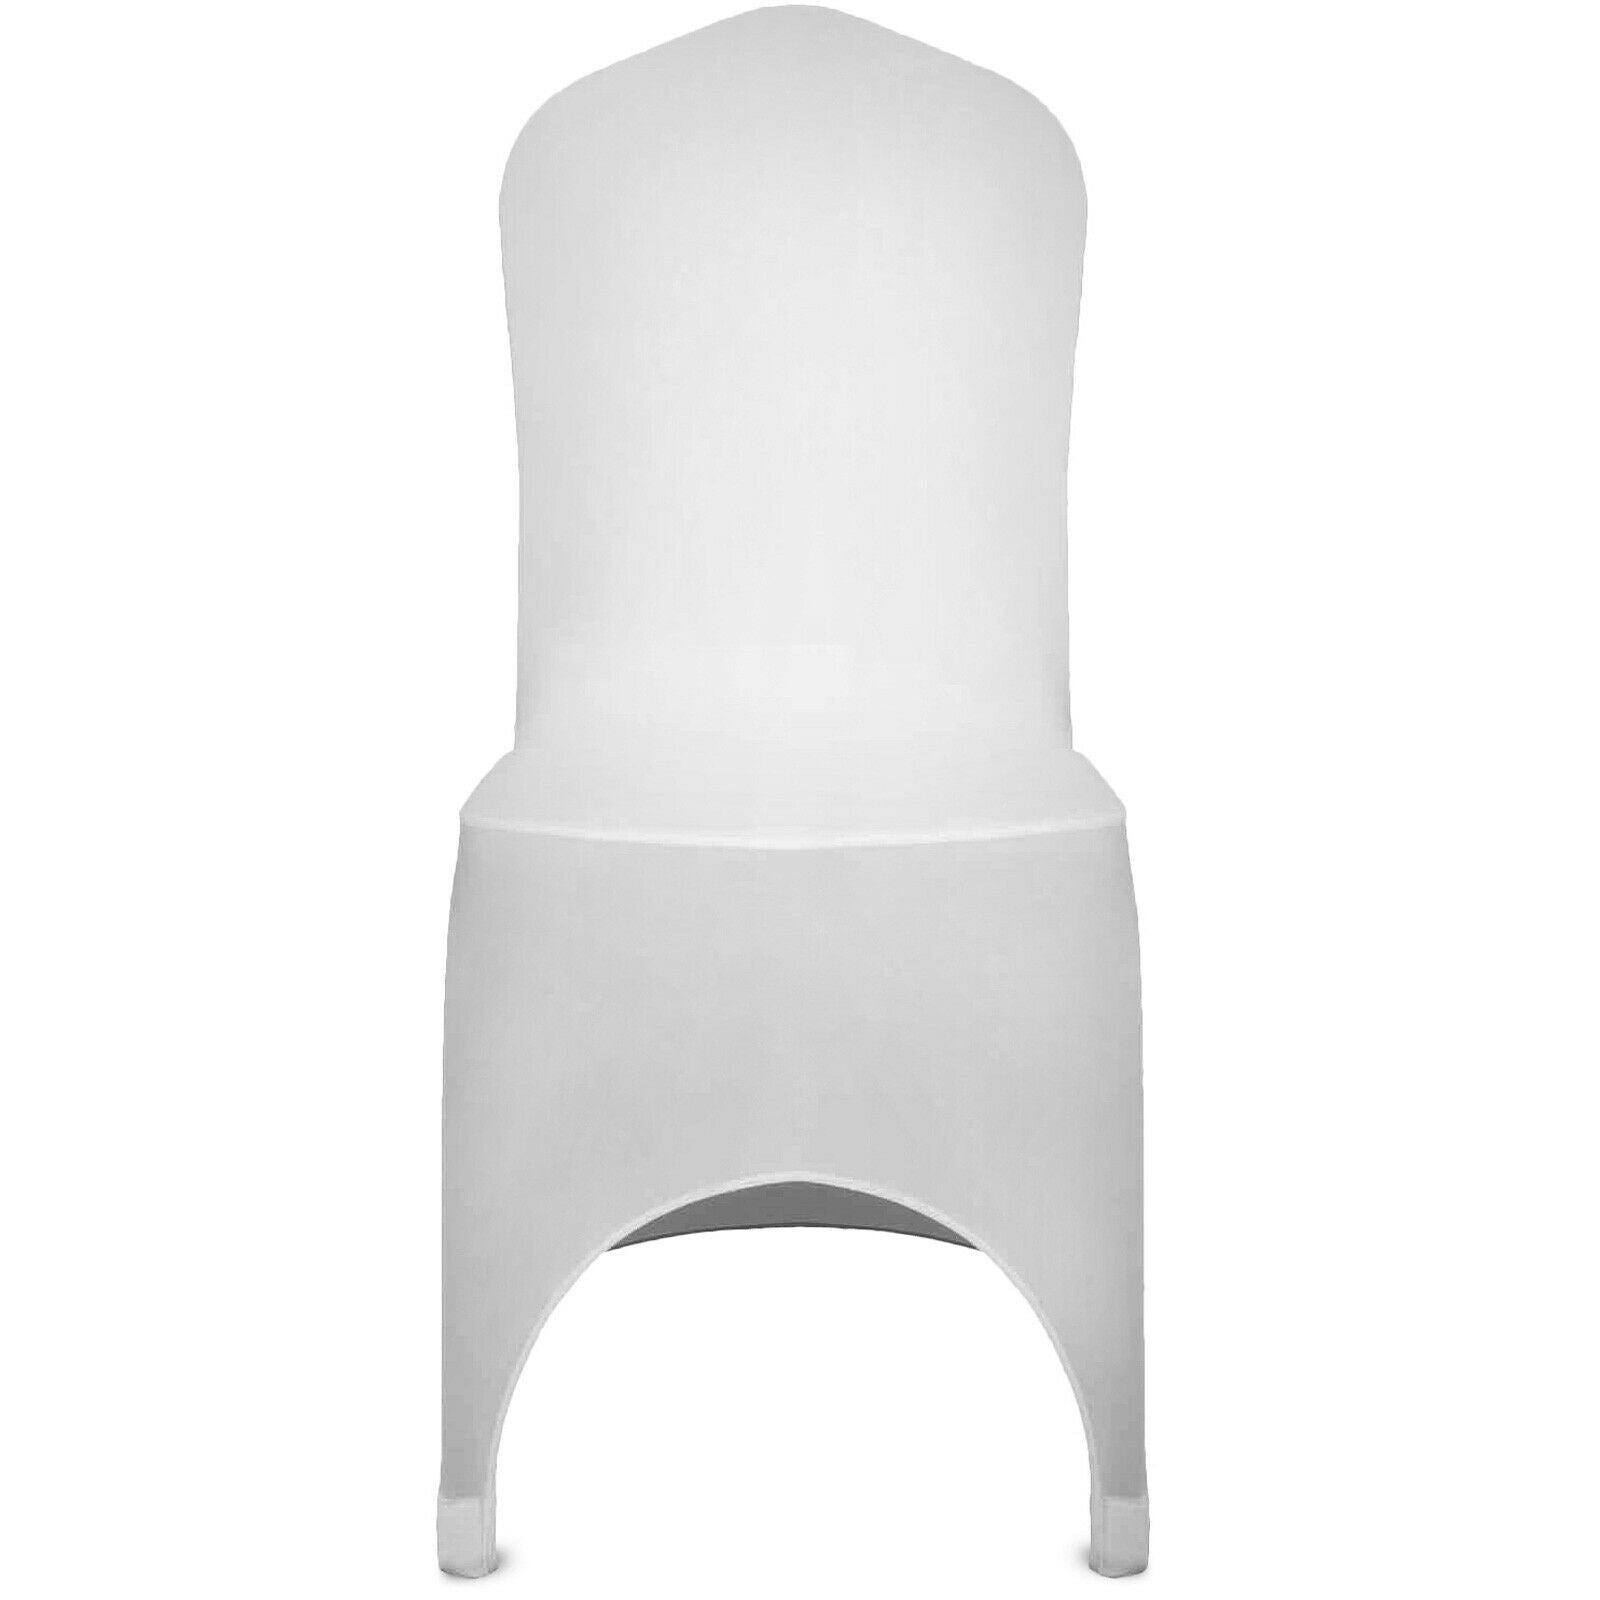 Premium 50pc Spandex Chair Cover White Slipover Stretch Chair Cover for Wedding Party - Morealis